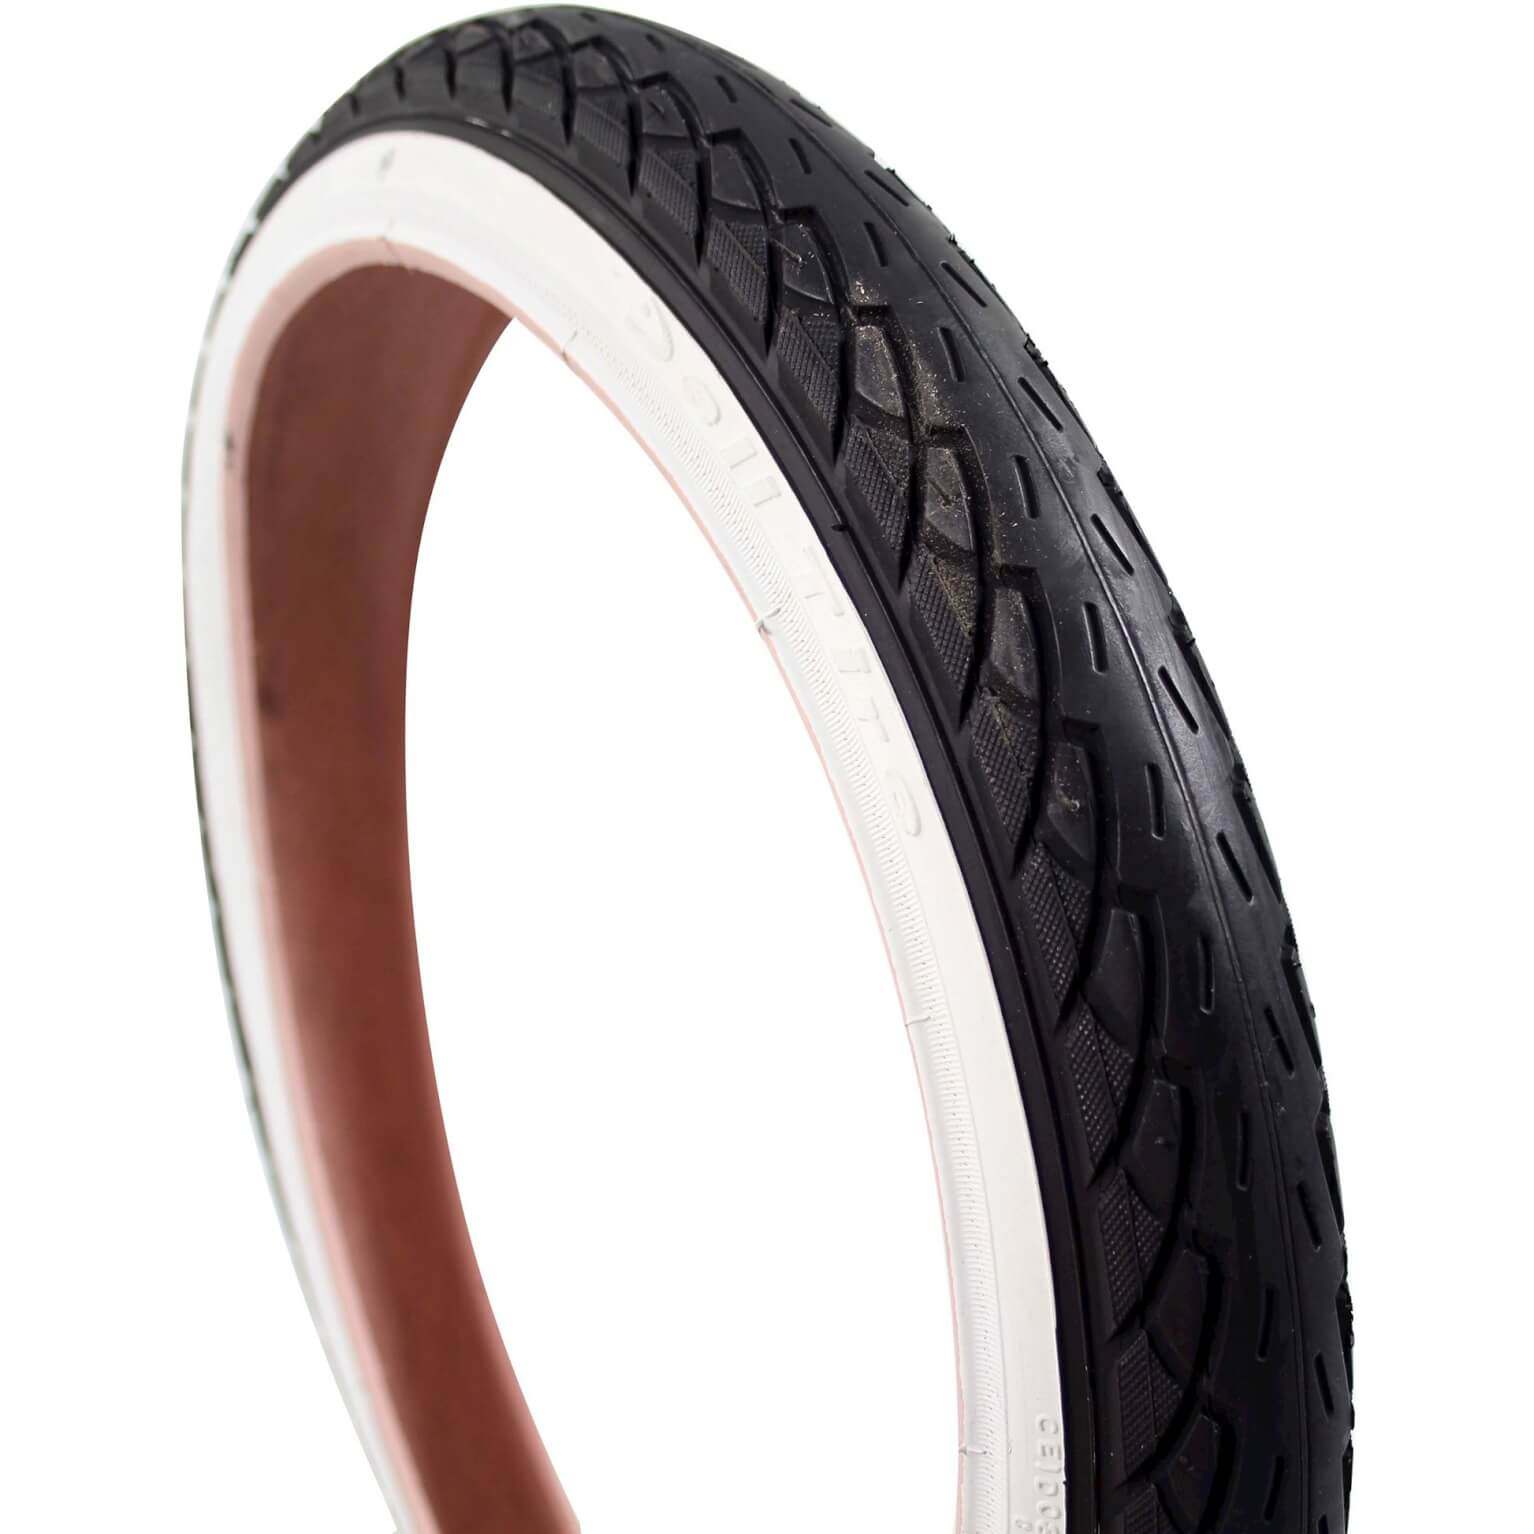 Deli Tire Tire 18x1.75 Inch - Black/White